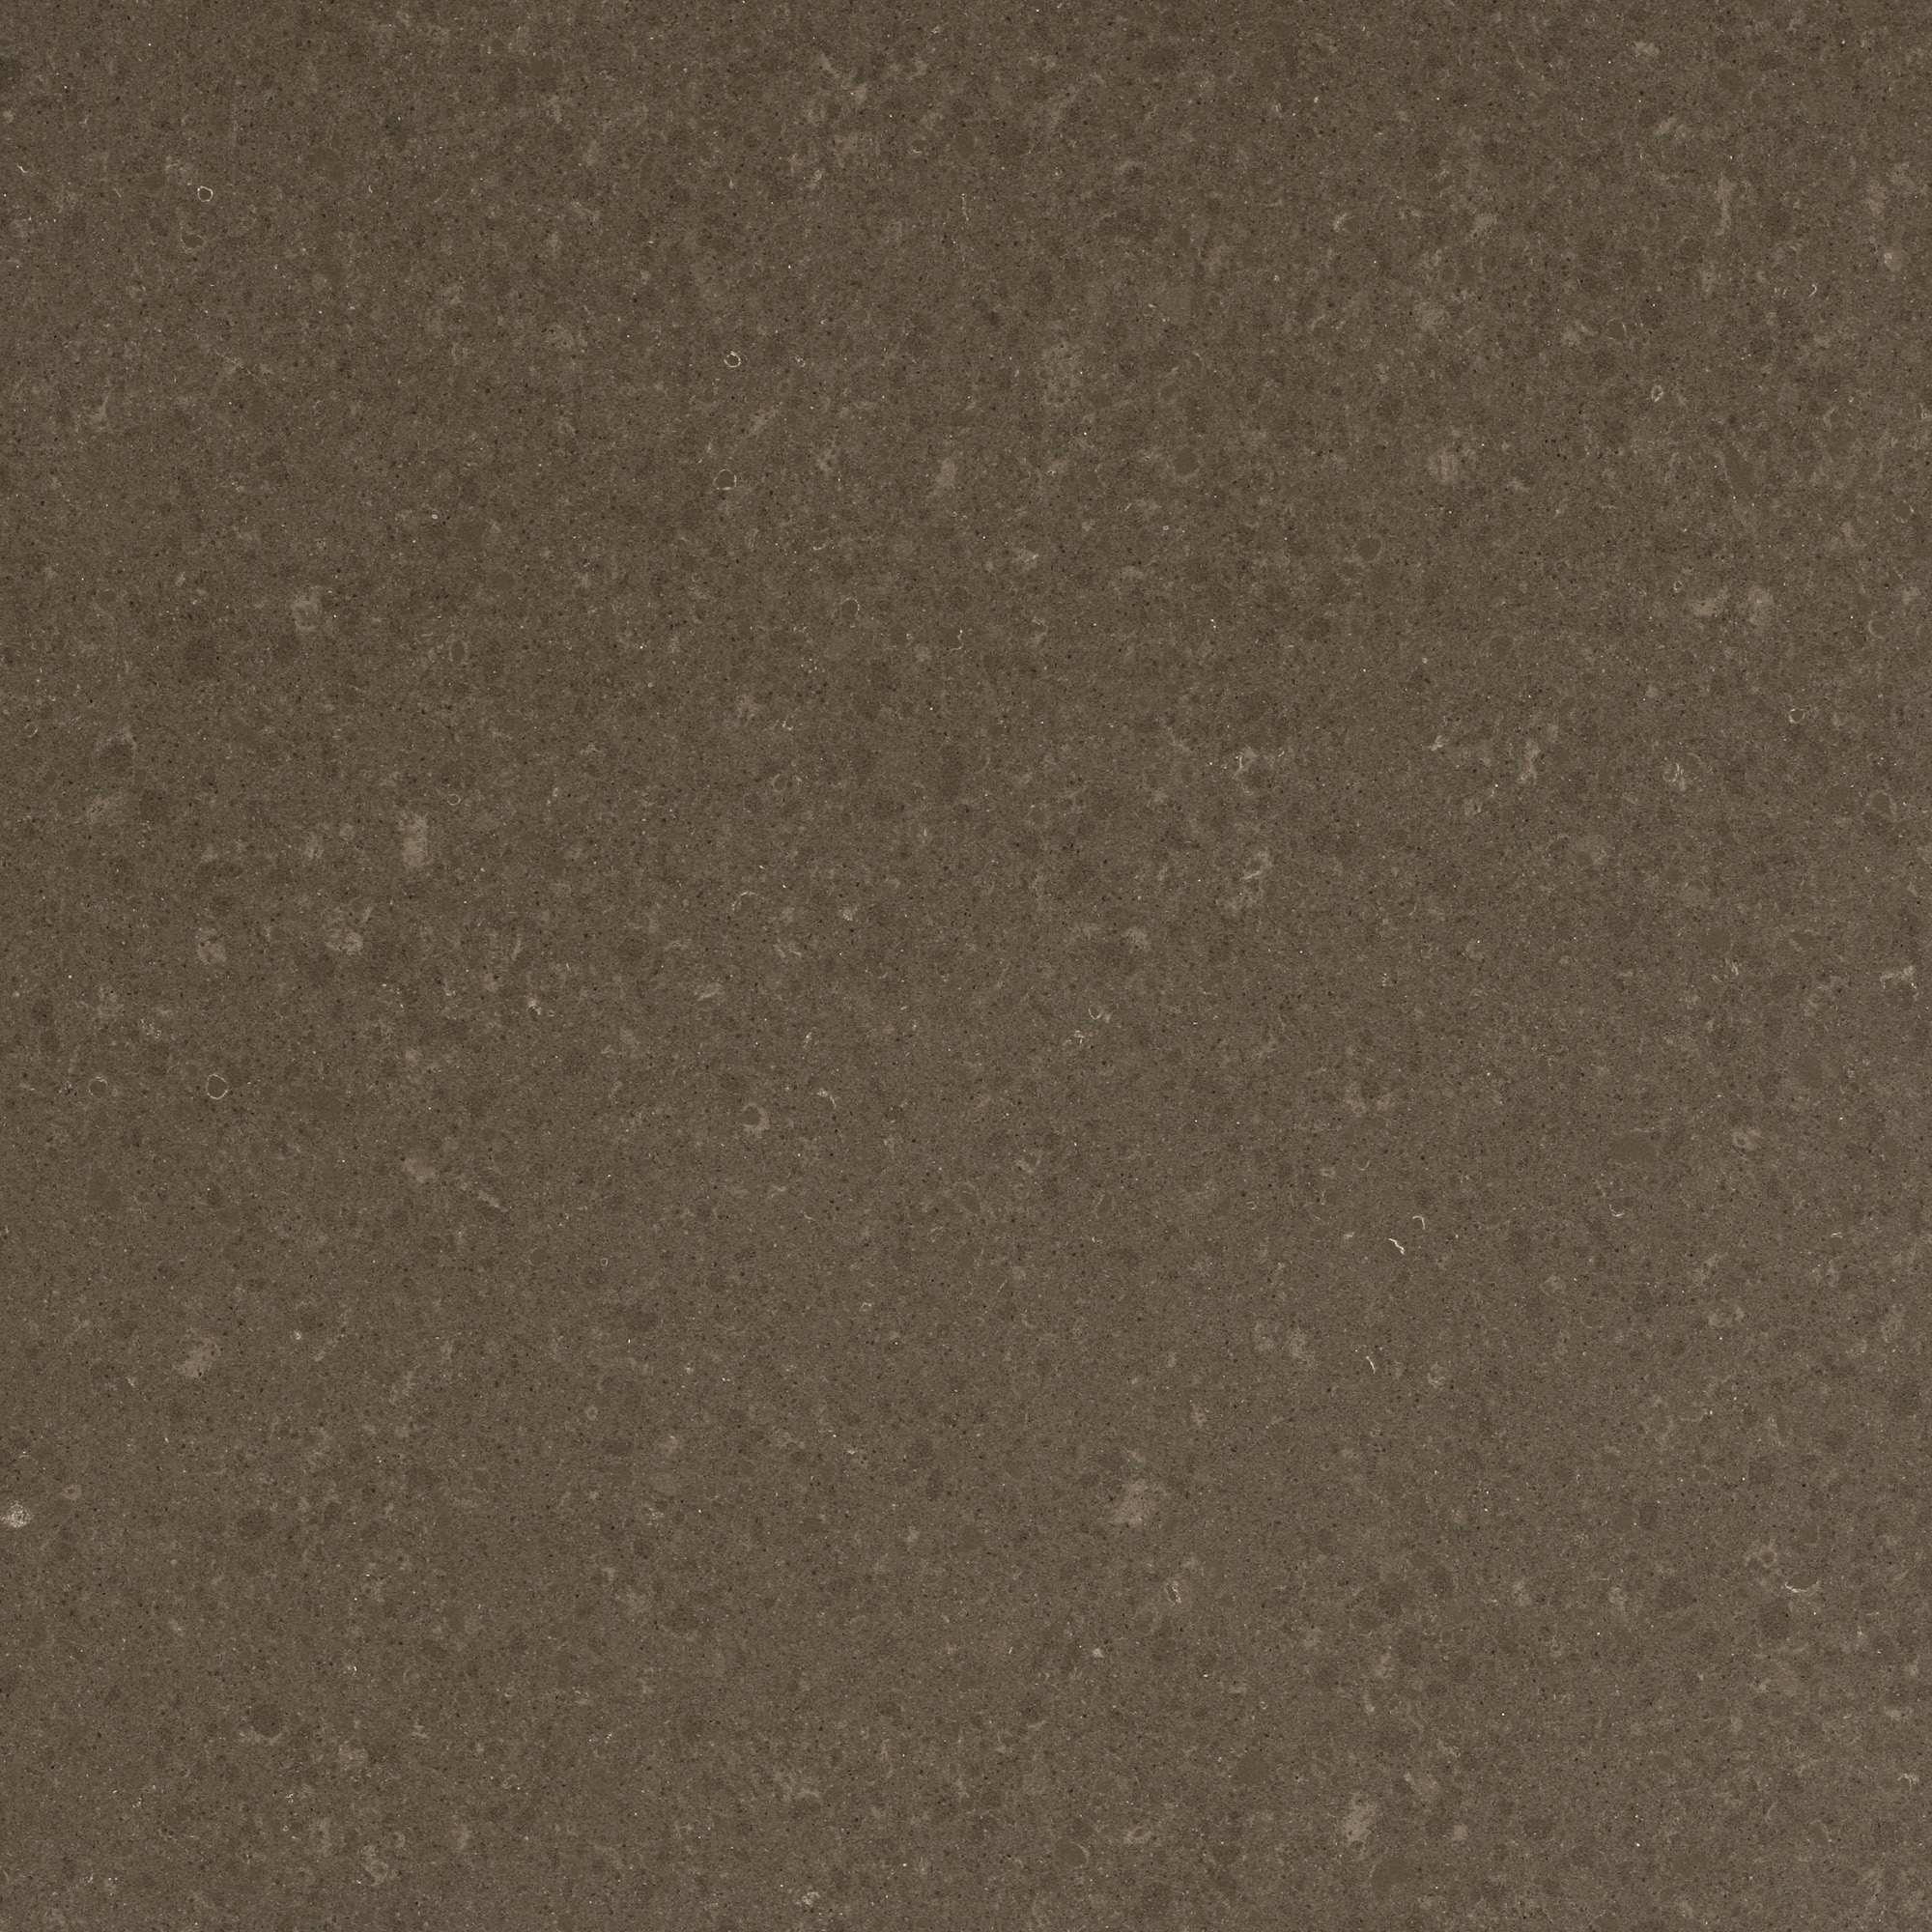 Caesarstone Countertop Thickness Wild Rice 4360 Omicron Granite And Tile